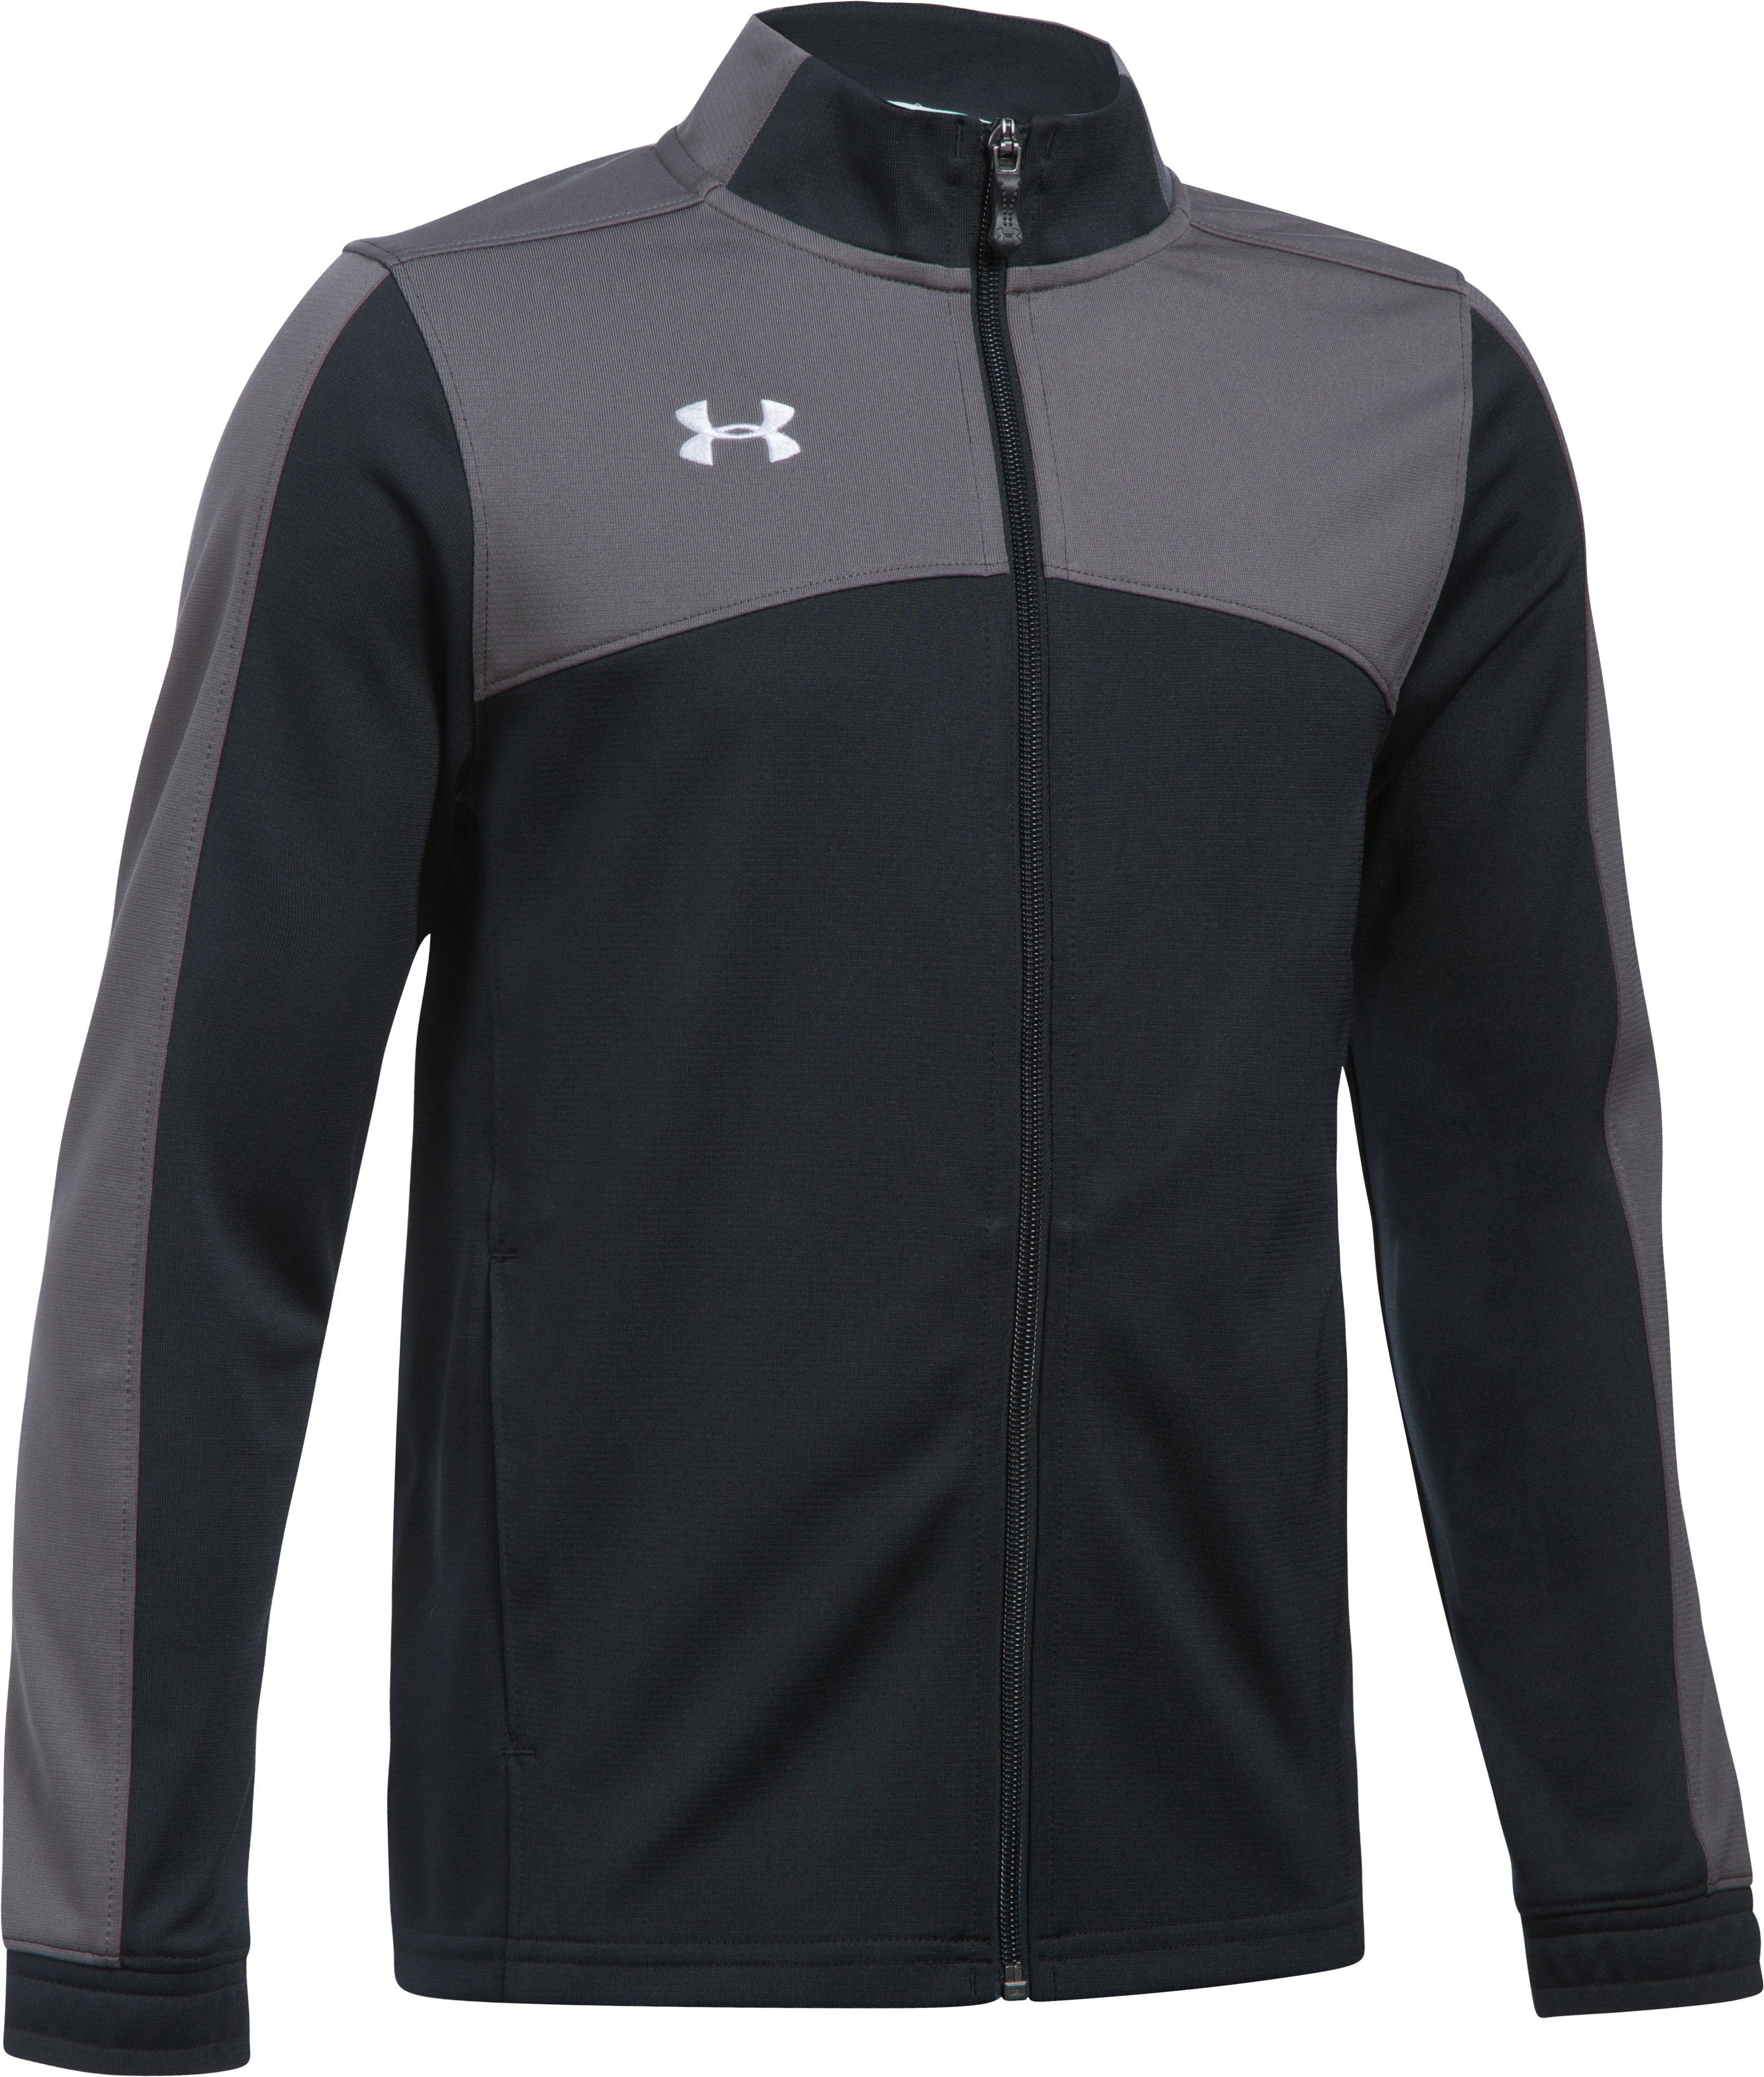 Boys' UA Futbolista Soccer Track Jacket 4 Colors $27.50 - $41.99